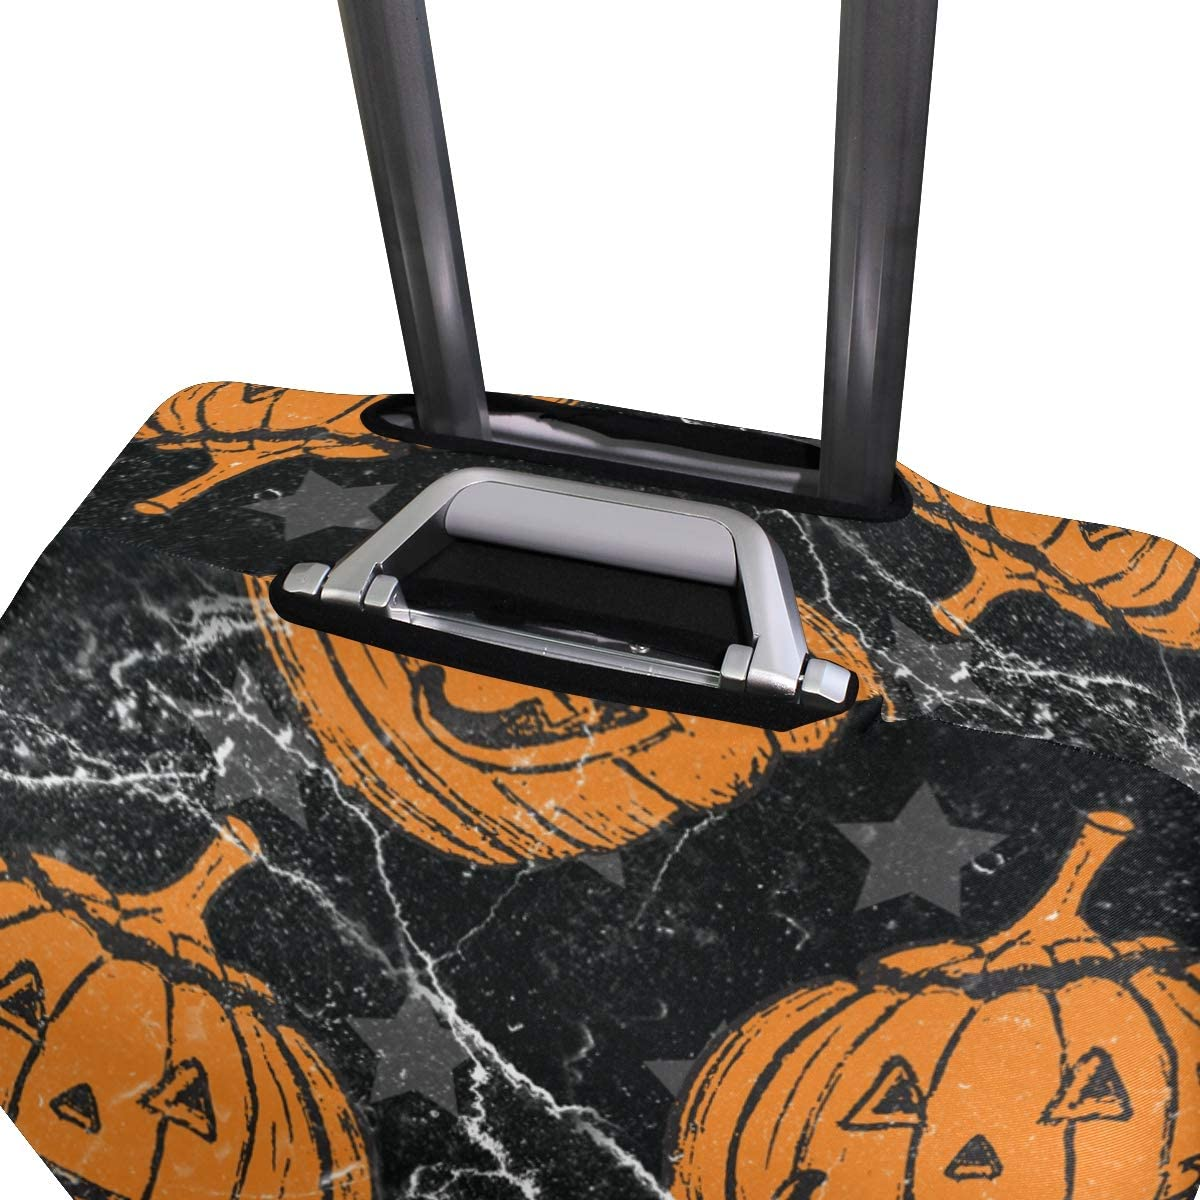 Holloween Travel Luggage Covers Suitcase Protector Bag Cover Fits 18-32 Inch Luggage Suitcase Baggage Cover